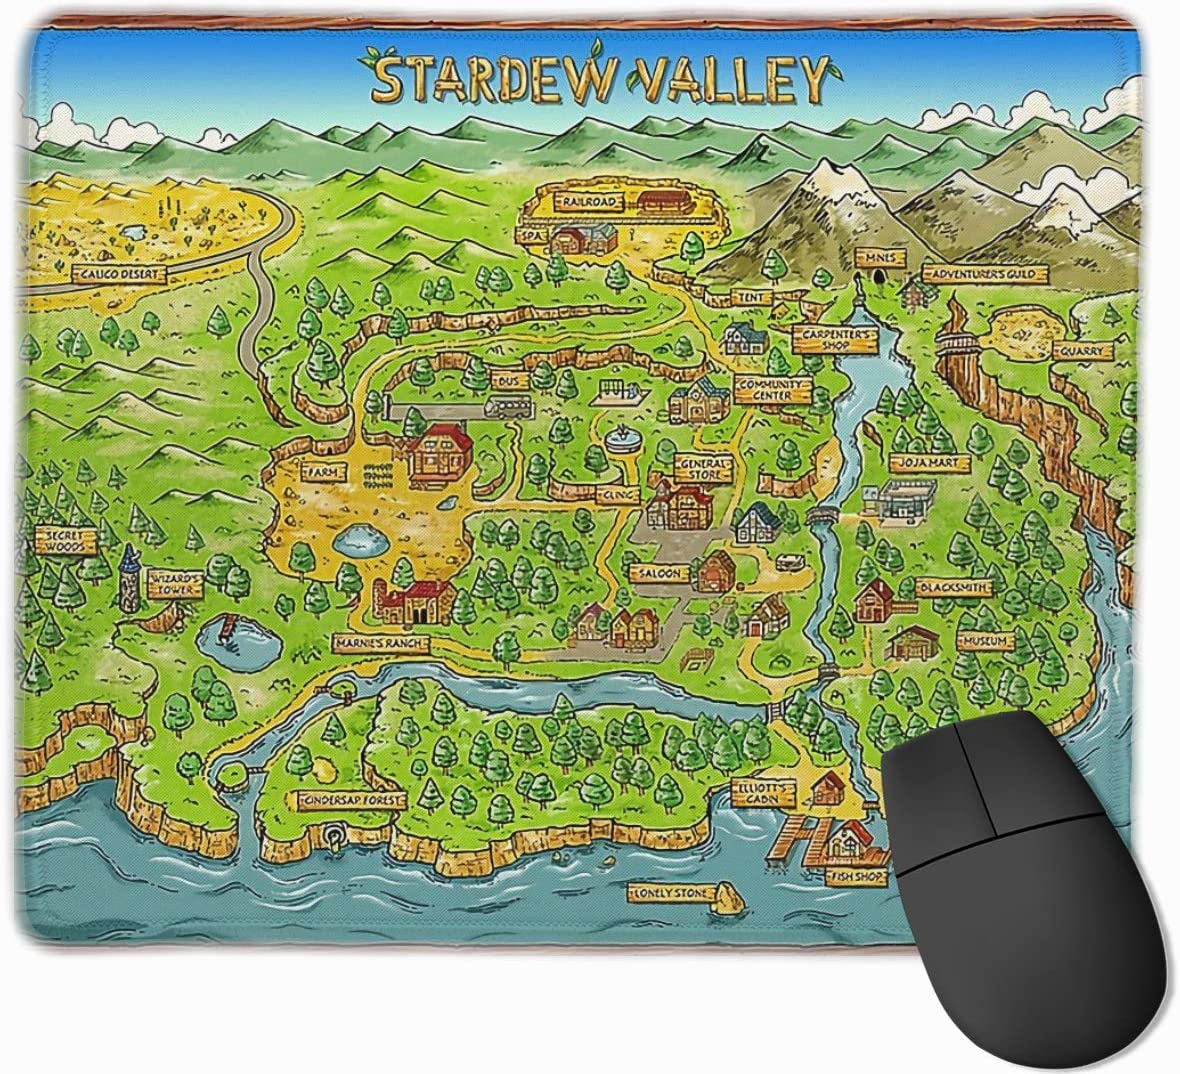 Laptop Computer Stardew Valley Map Customized Gaming and Work Mouse Pad Non-Slip Durable Mouse Pad Small